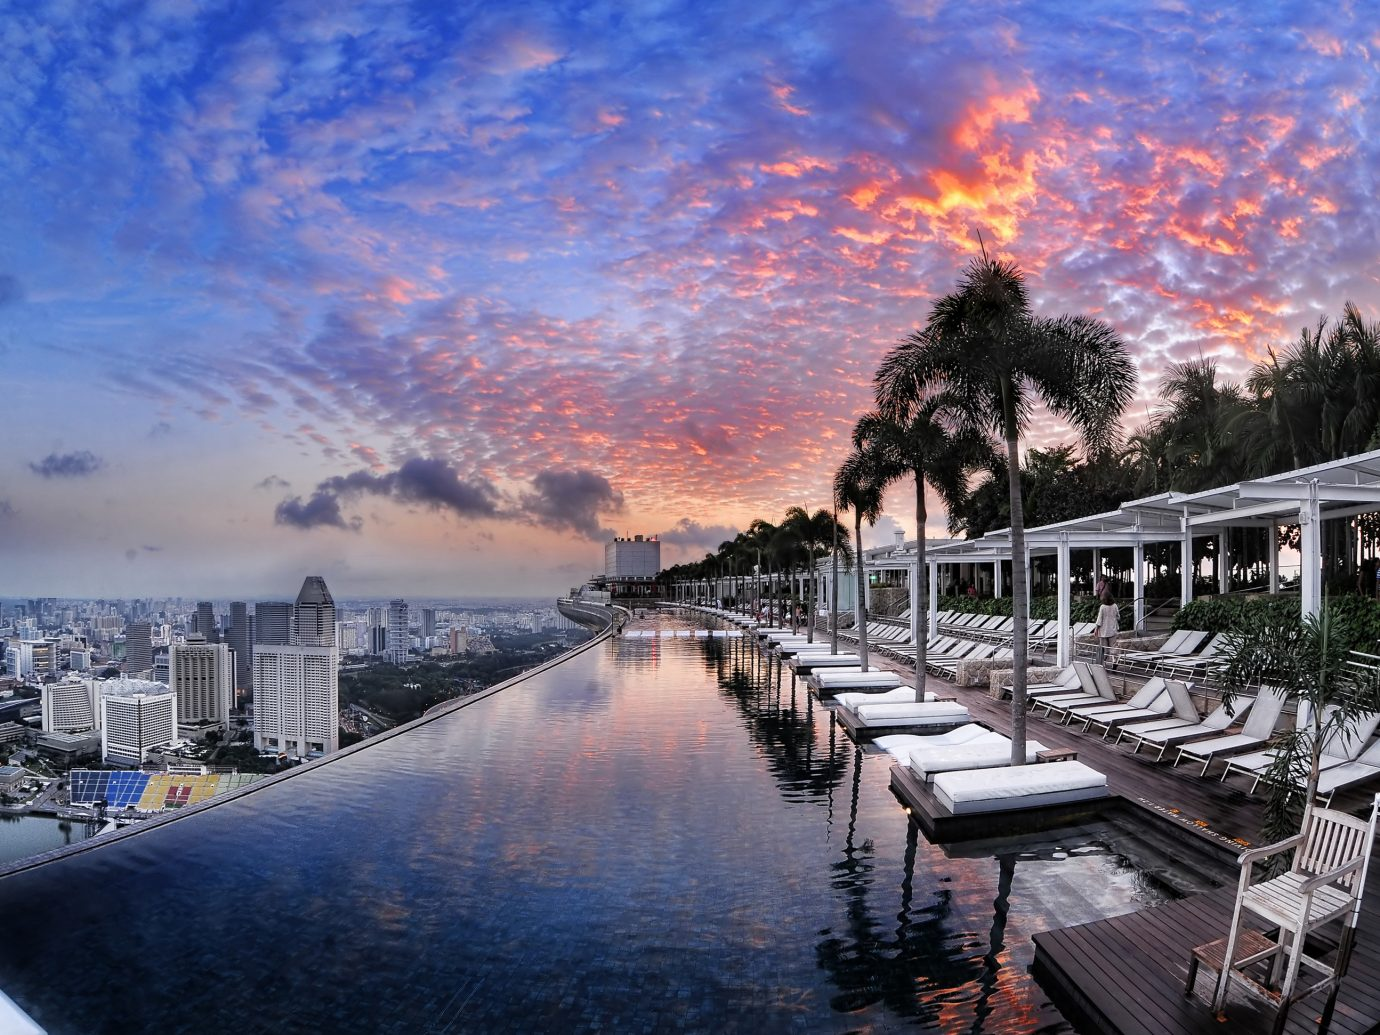 Travel Tips outdoor sky water reflection cityscape evening morning Sunset dusk waterway dock marina Sea skyline clouds several